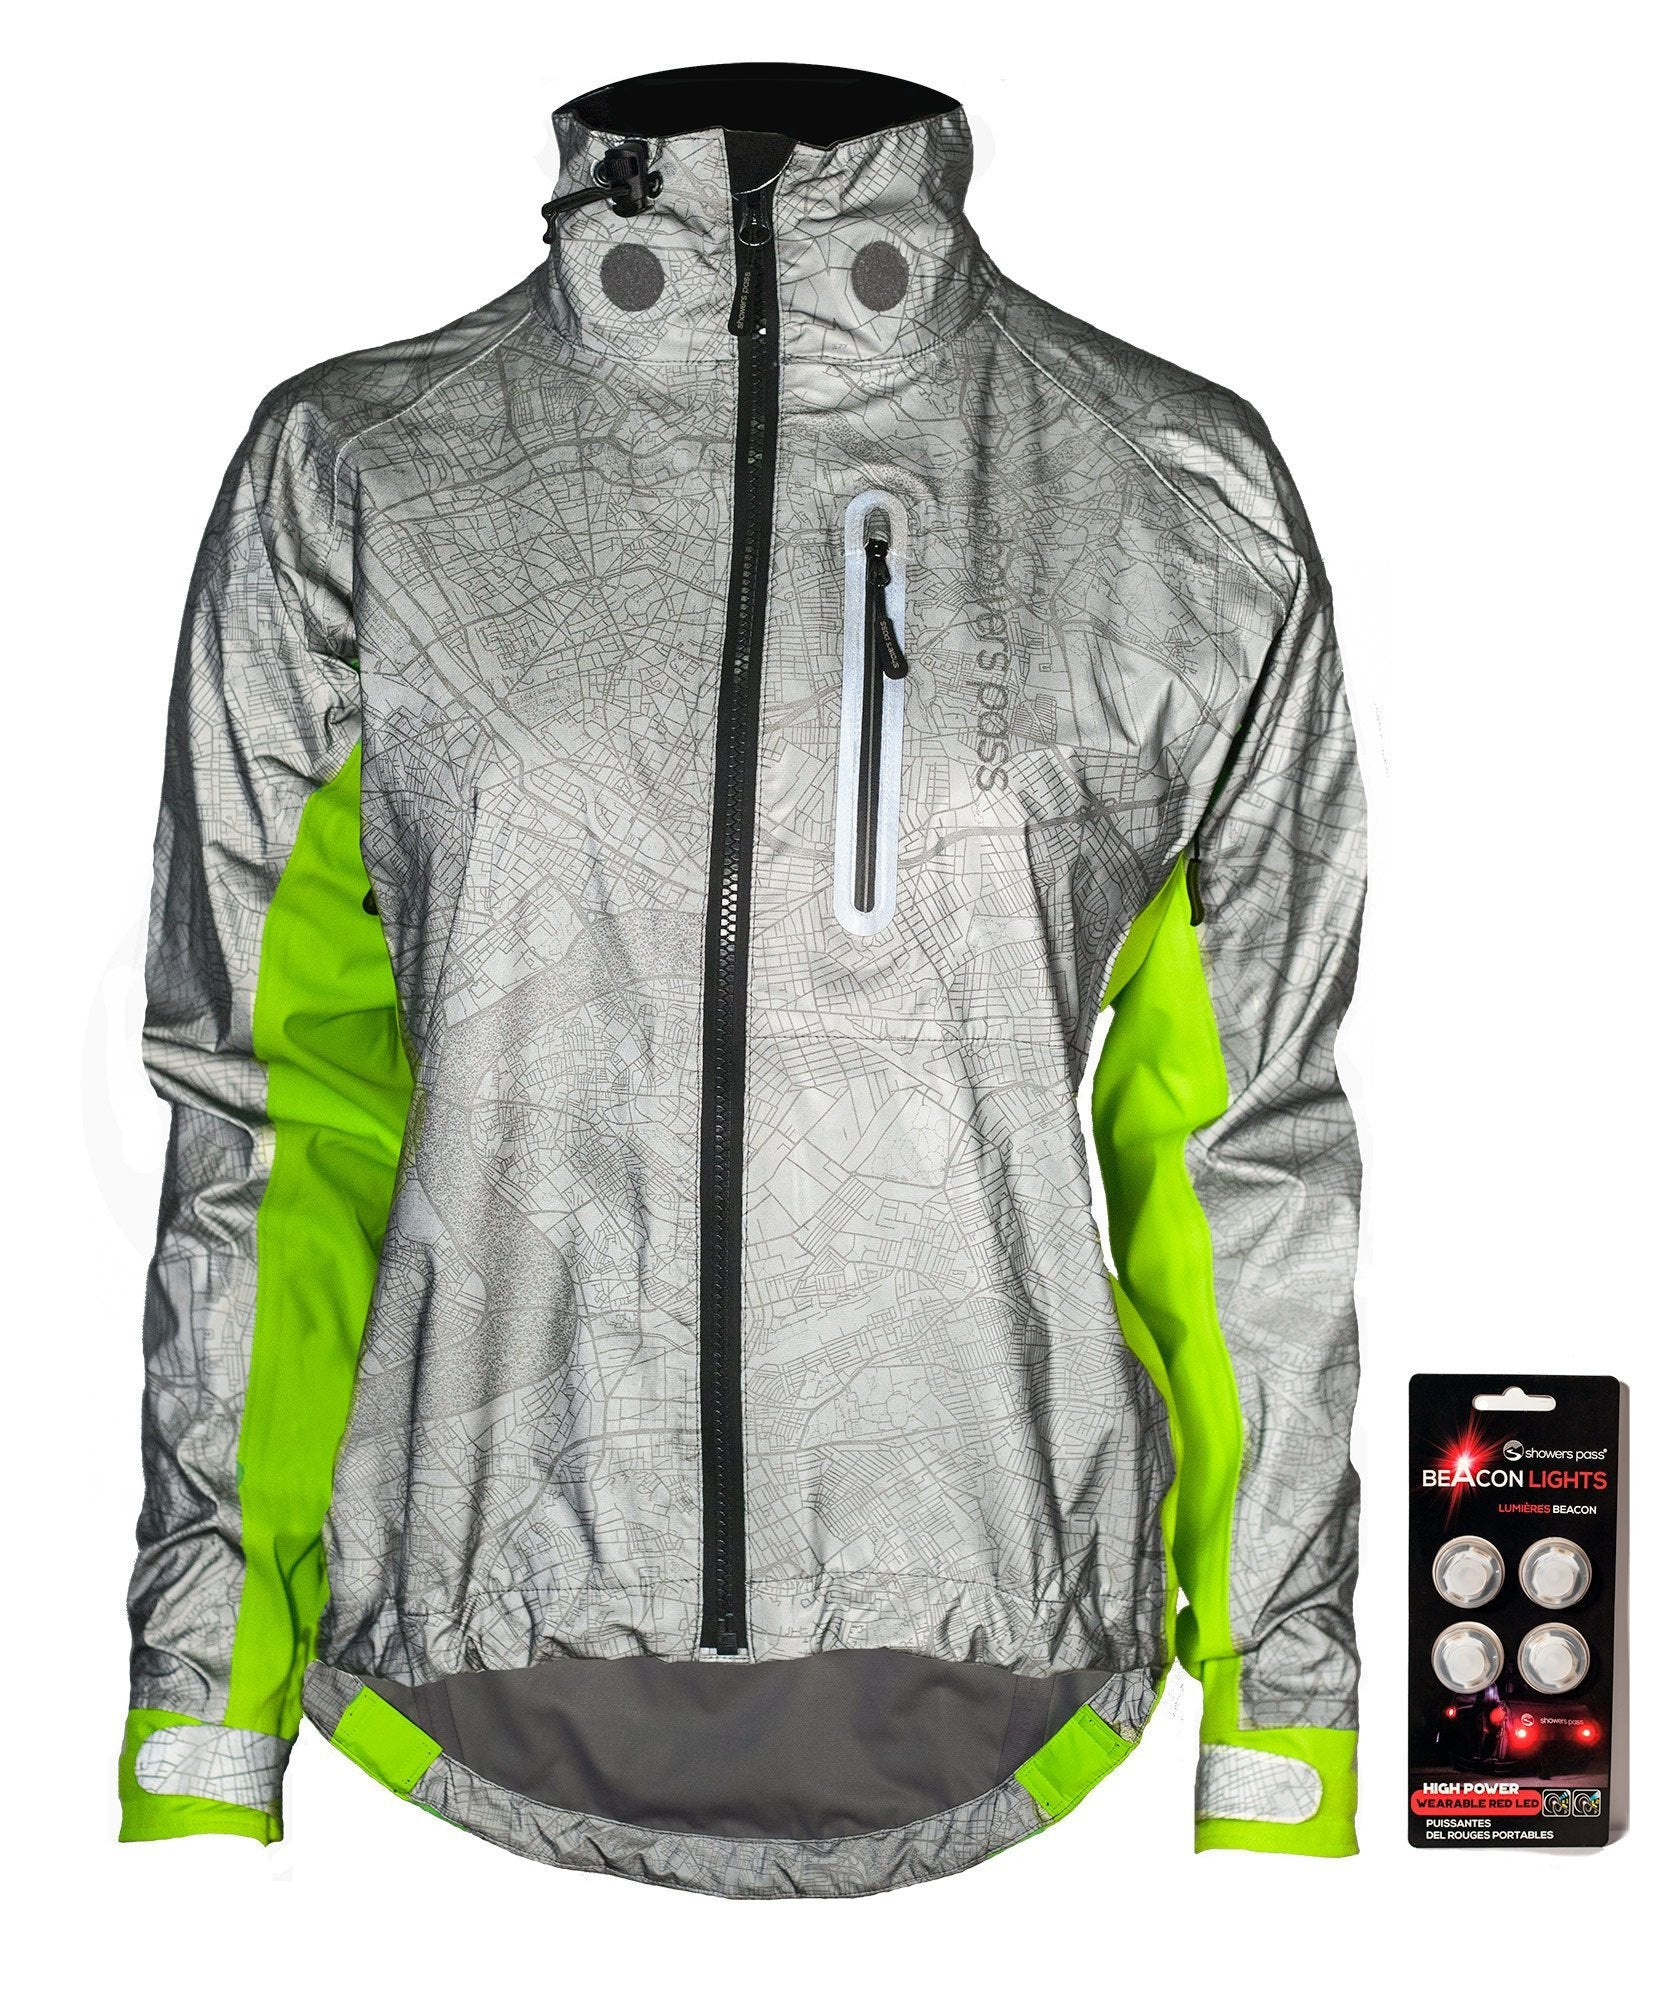 Women's Hi-Vis Torch E-Bike Jacket With Beacon Lights